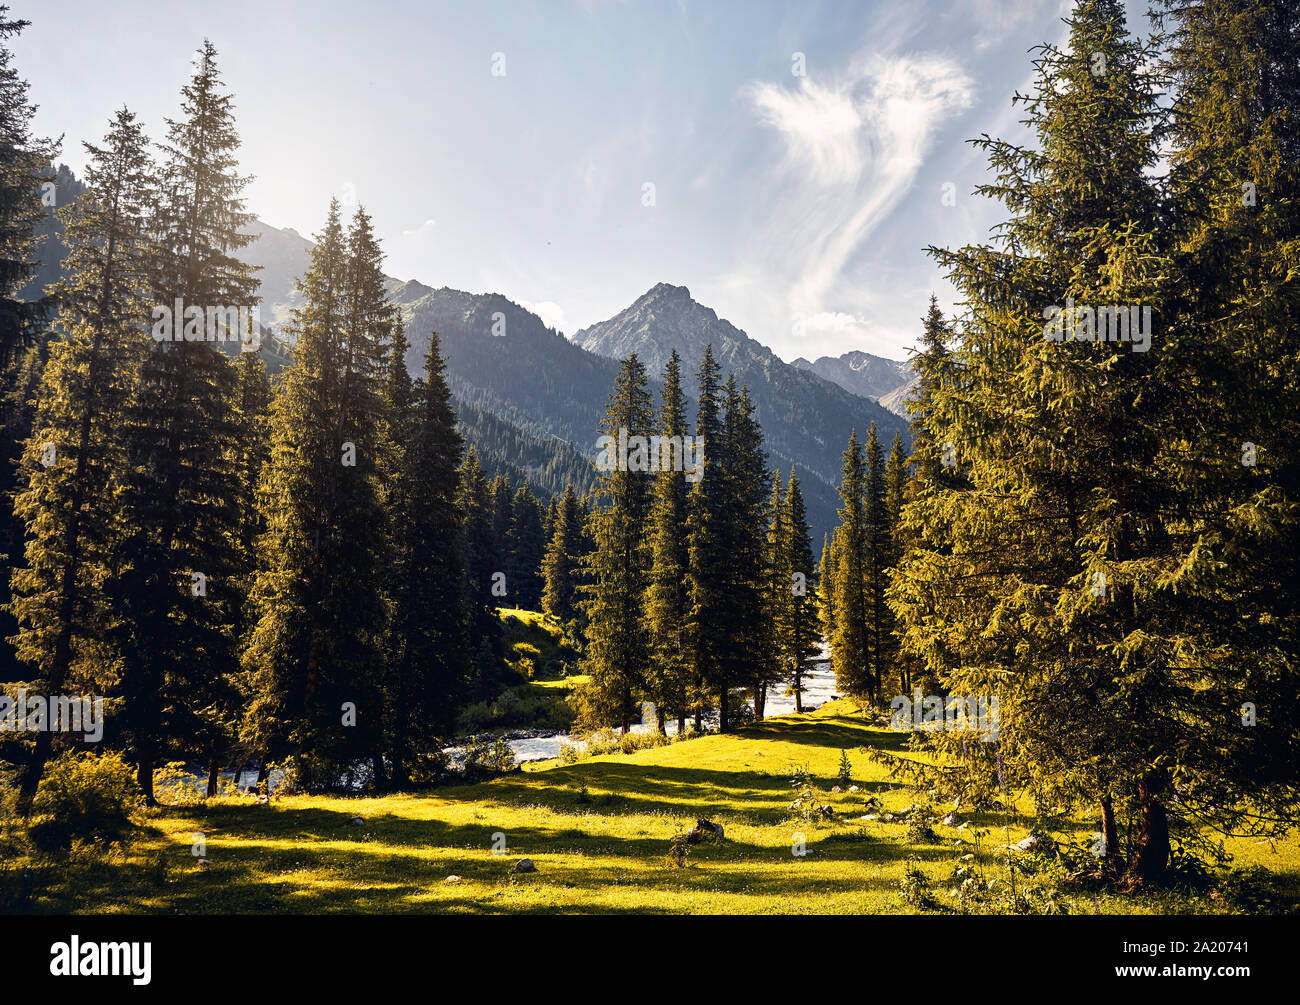 Landscape of river and mountain valley with spruce trees and snowy peak in Karakol national park, Kyrgyzstan Stock Photo